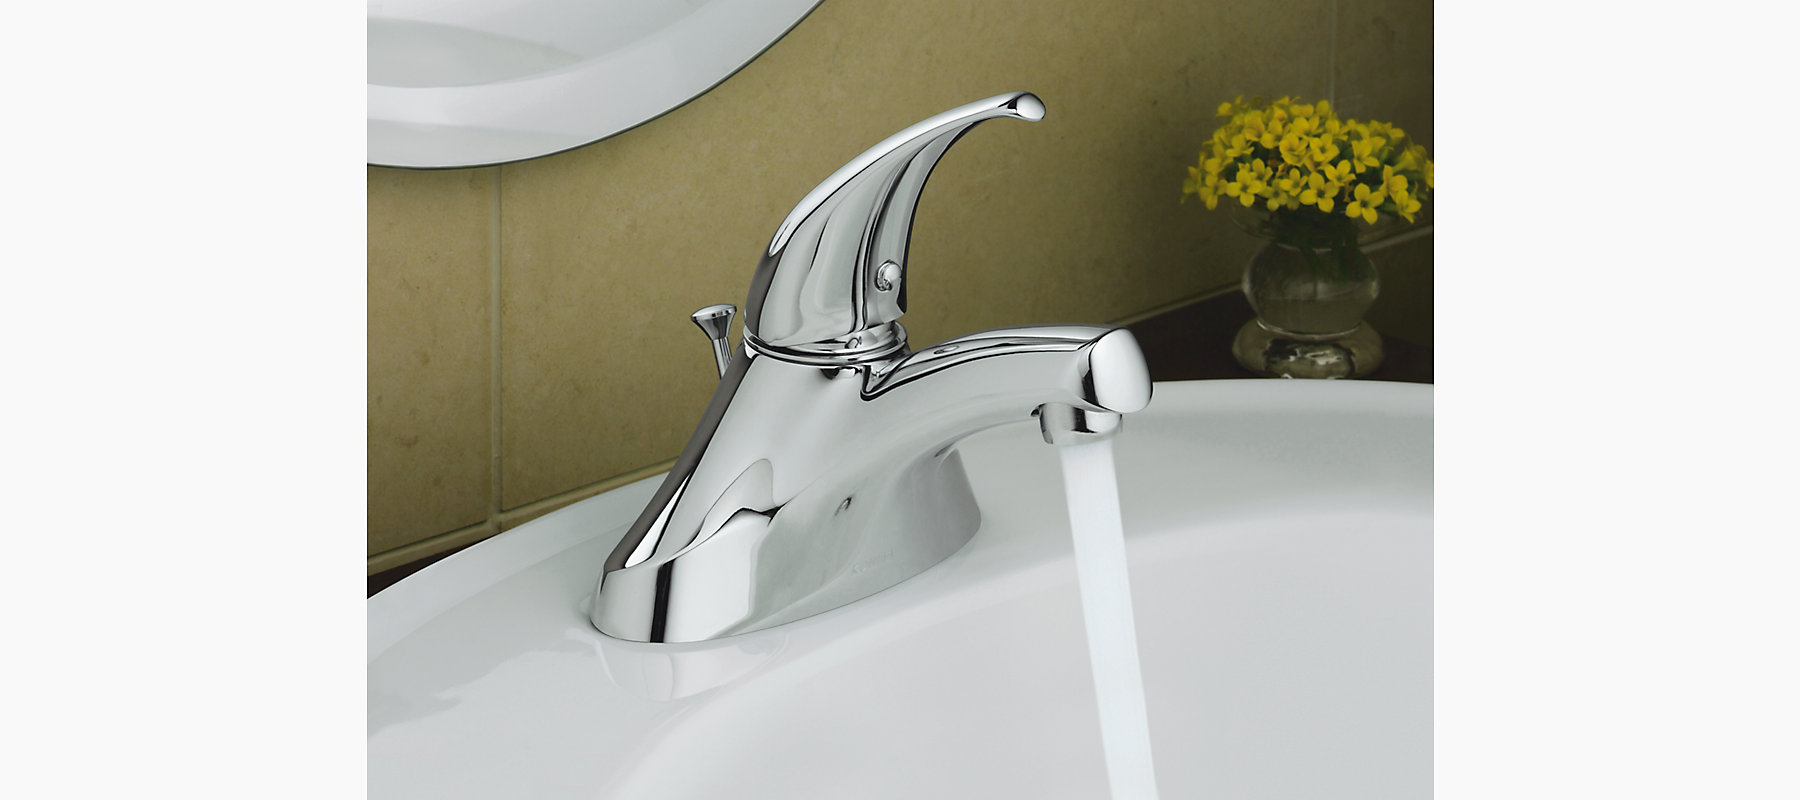 Coralais centerset commercial bathroom sink faucet with lever handle ...